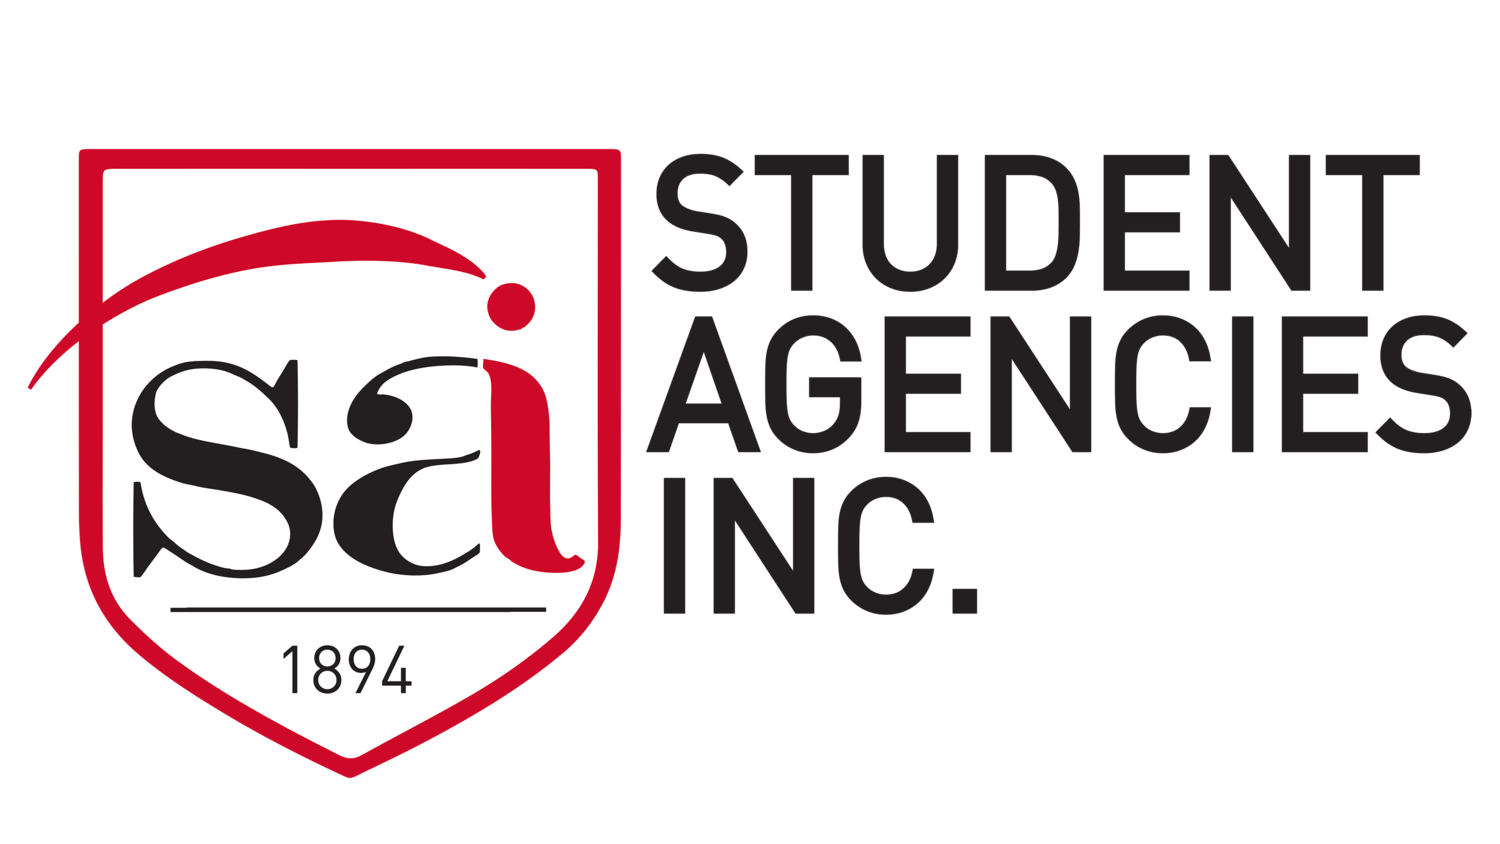 Student Agencies Properties, Inc.